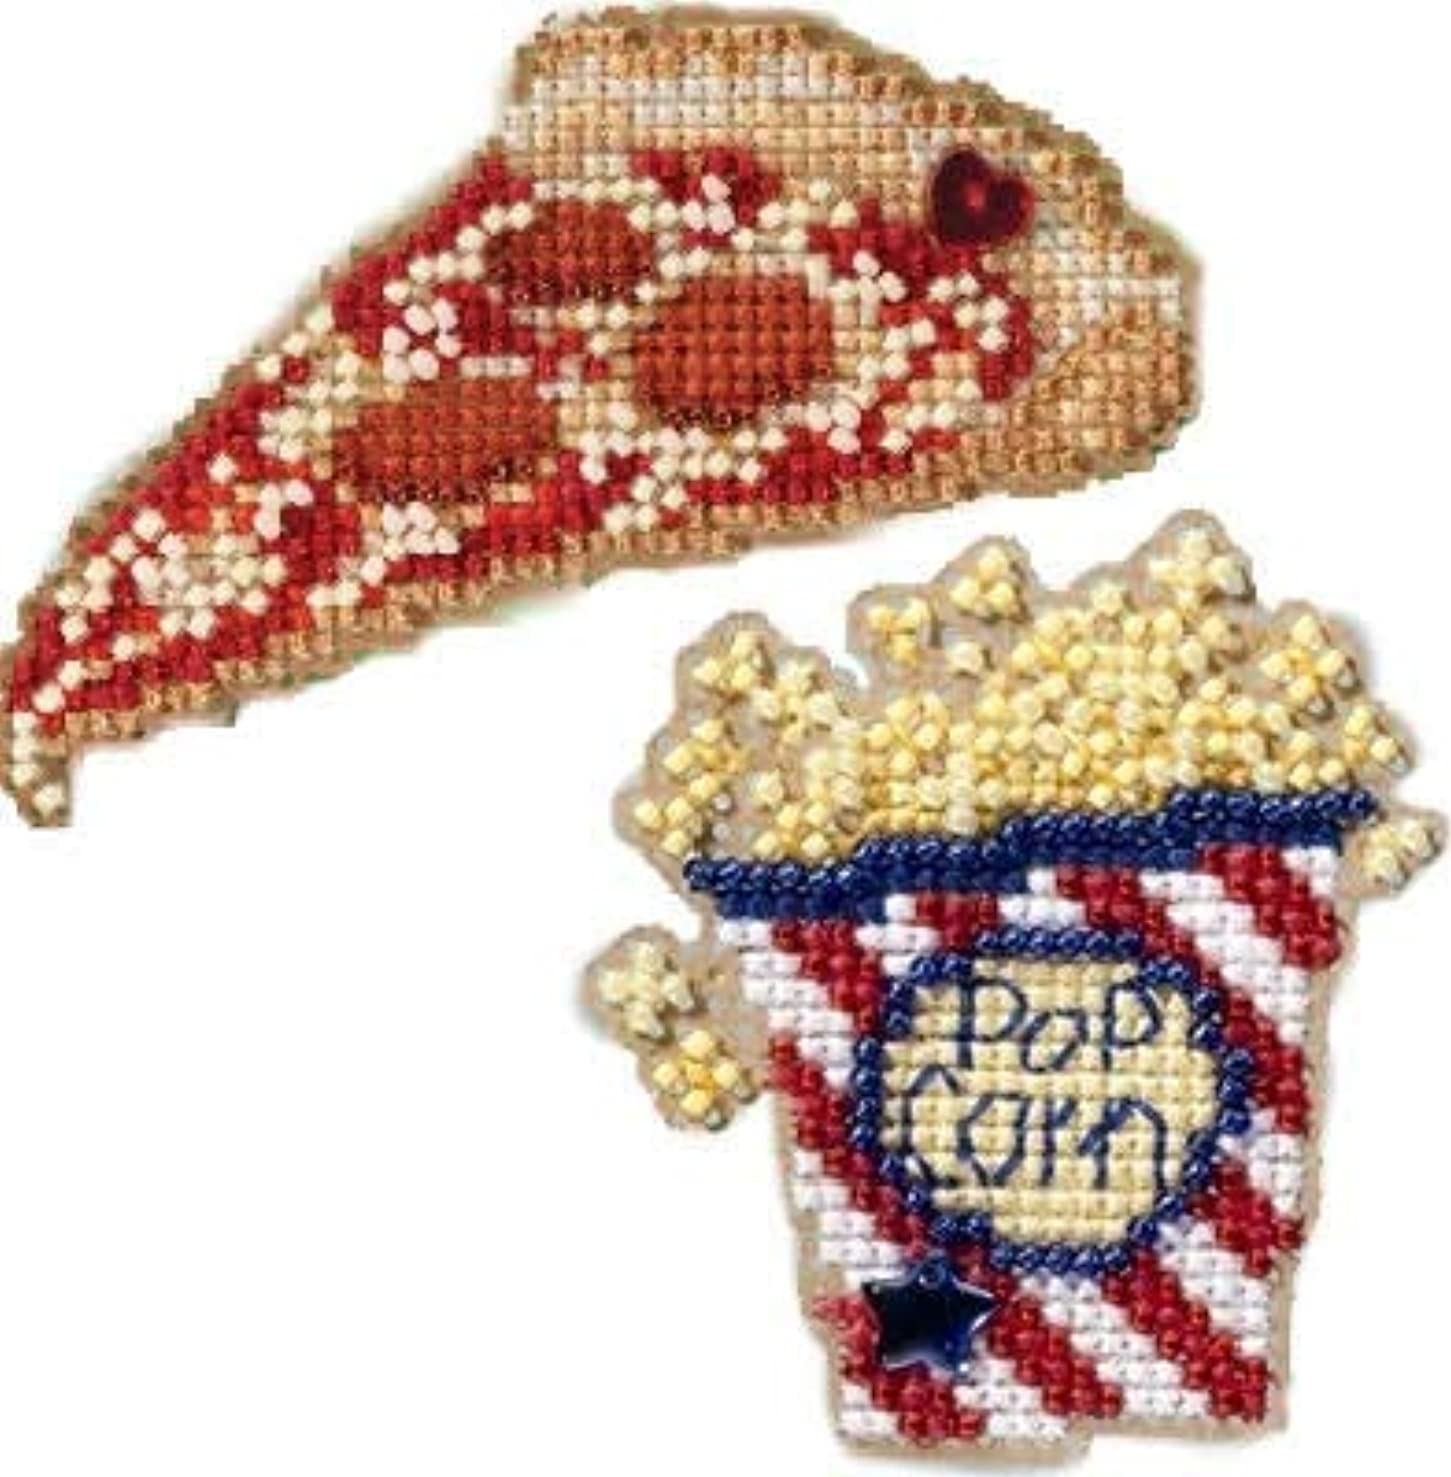 2 Kit Bundle, Counted Glass Beads : Pizza and Popcorn